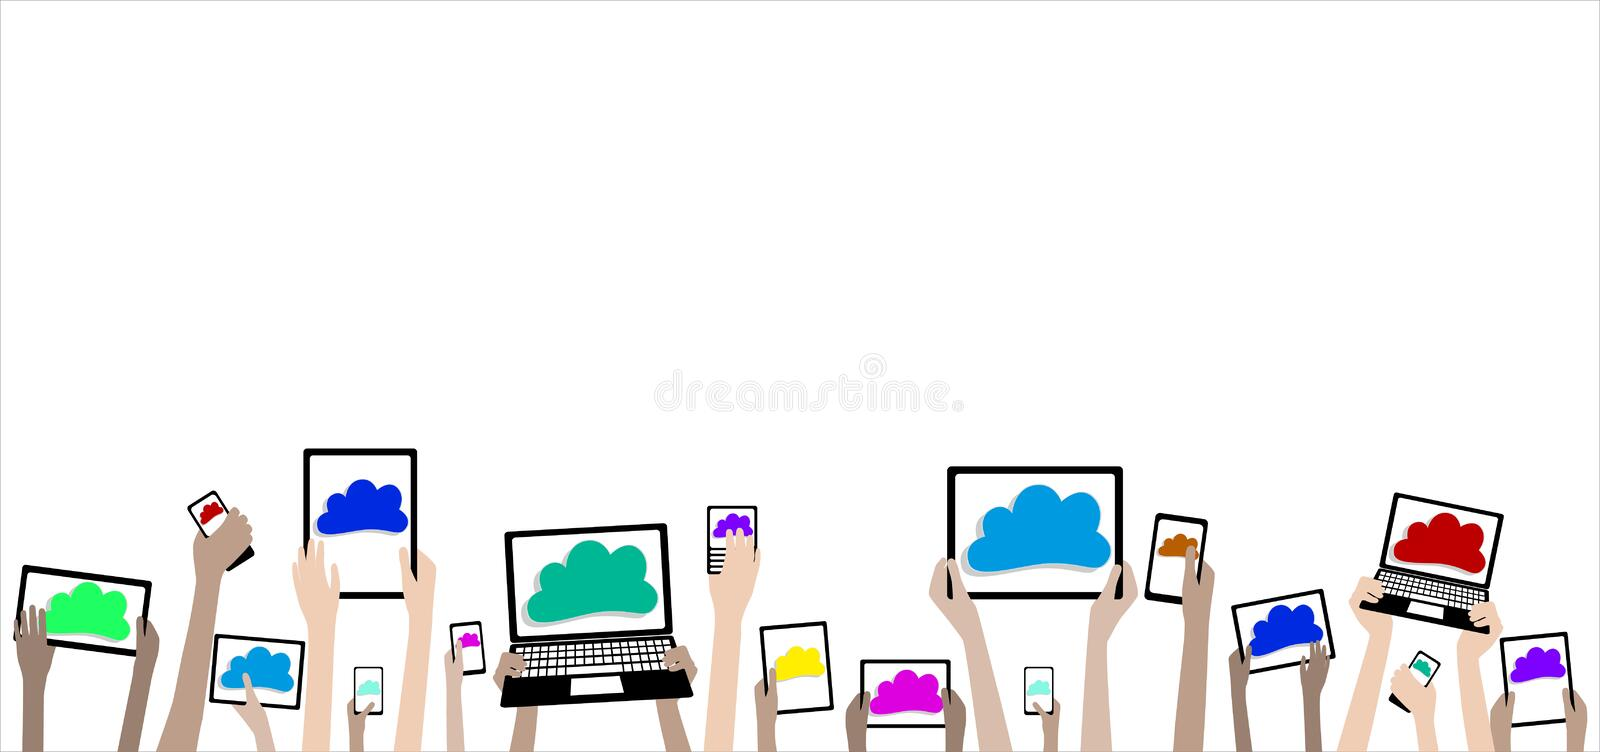 BYOD-Kinderenhanden met Computers en Wolkenbanner vector illustratie